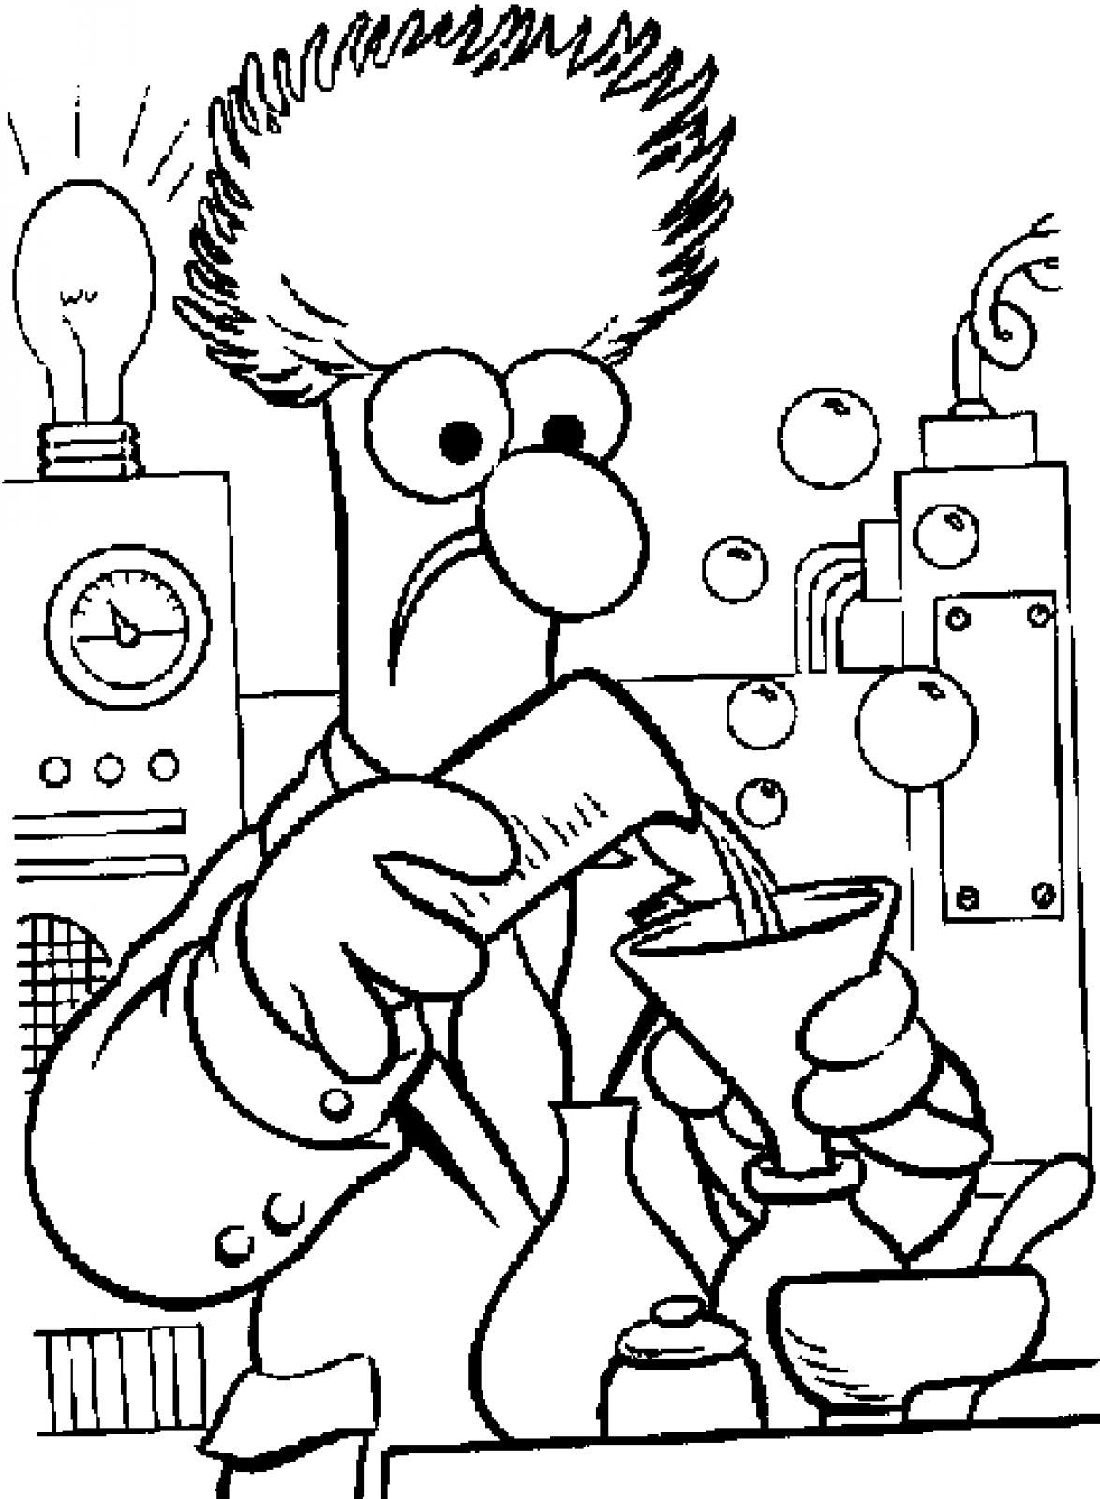 Chemistry-Coloring-Pages-Muppets